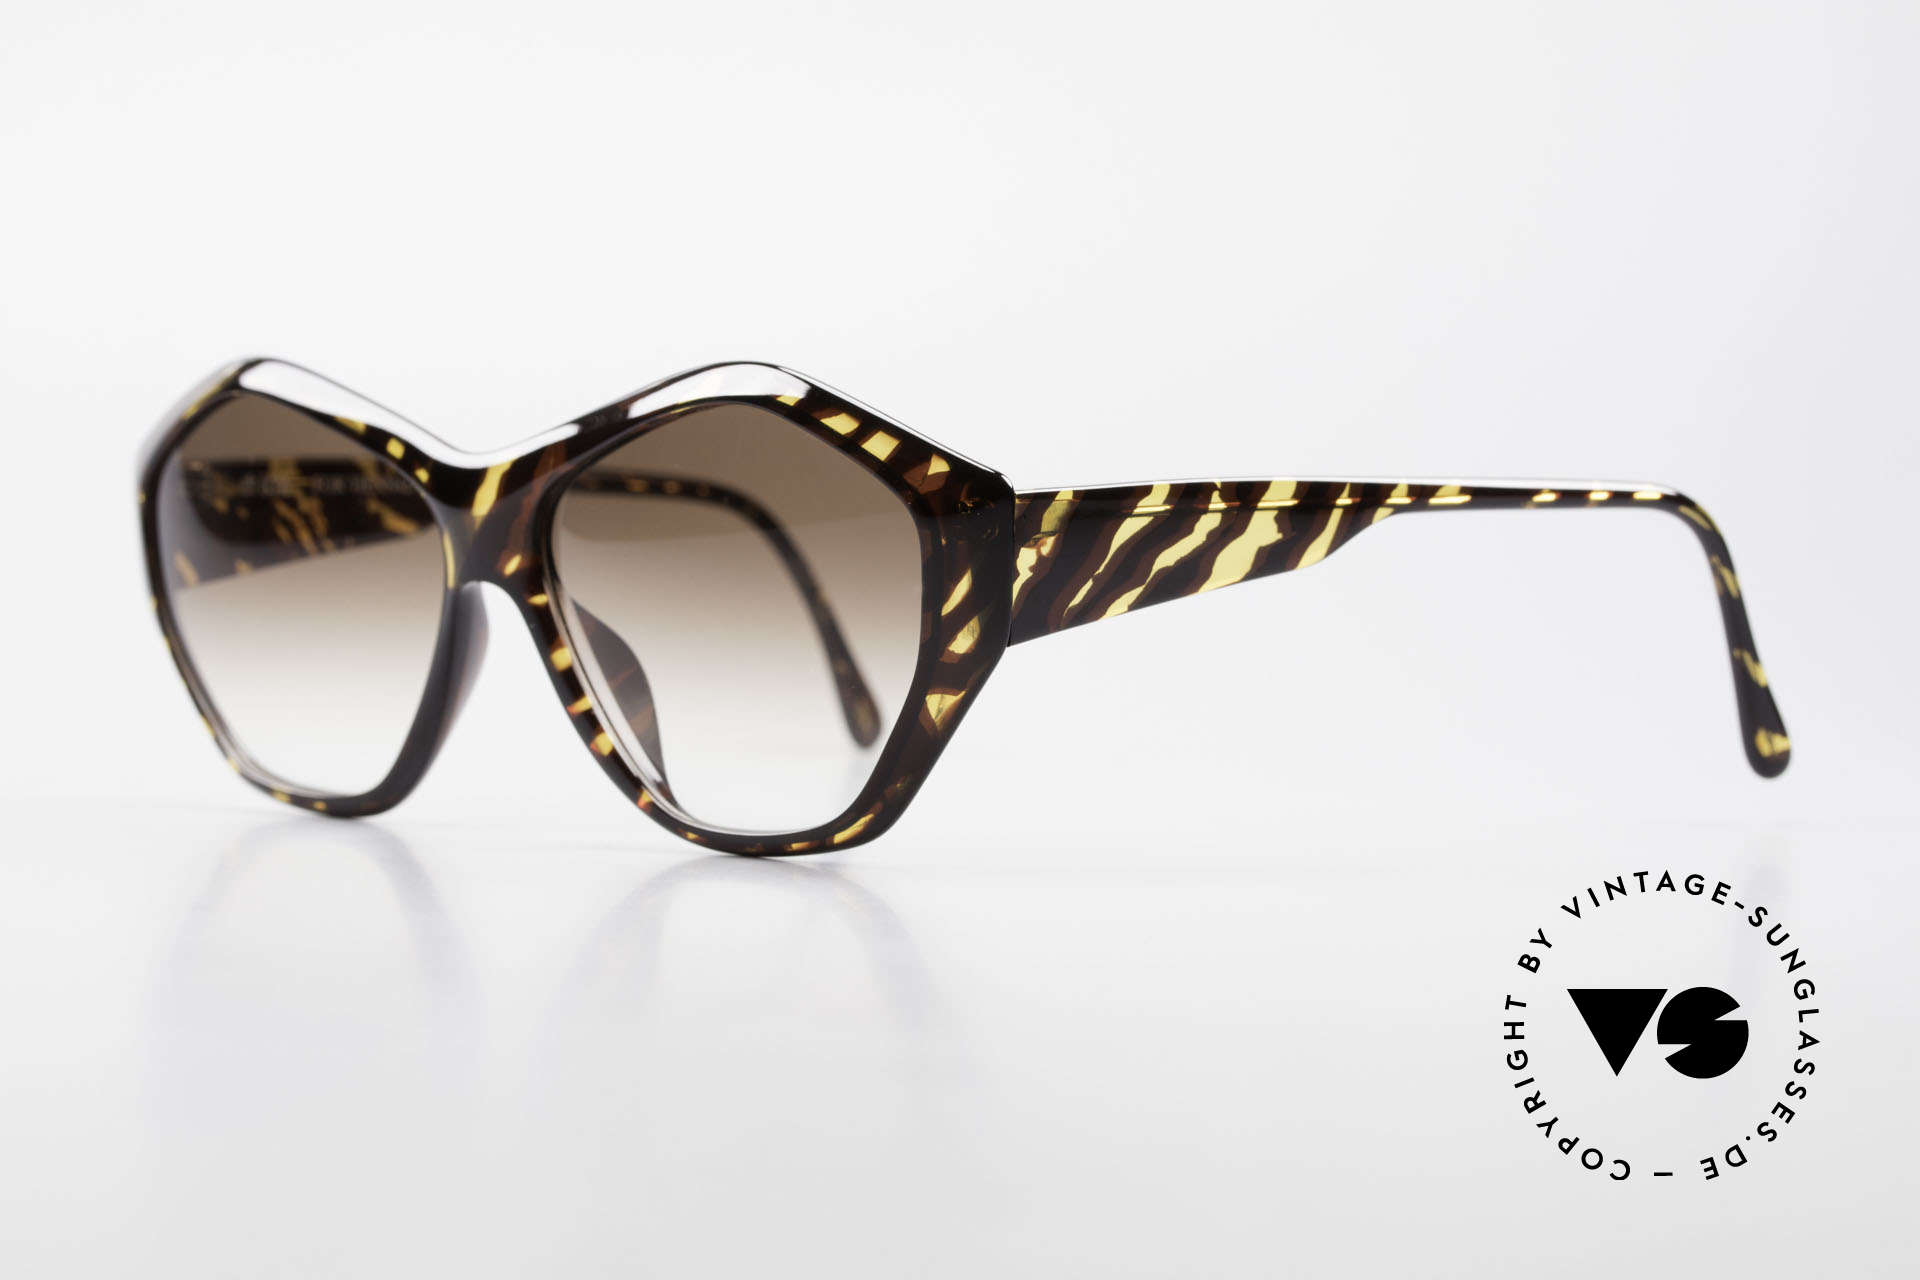 Paloma Picasso 1463 90's Optyl Sunglasses Ladies, just another masterwork from Picasso's art school!, Made for Women